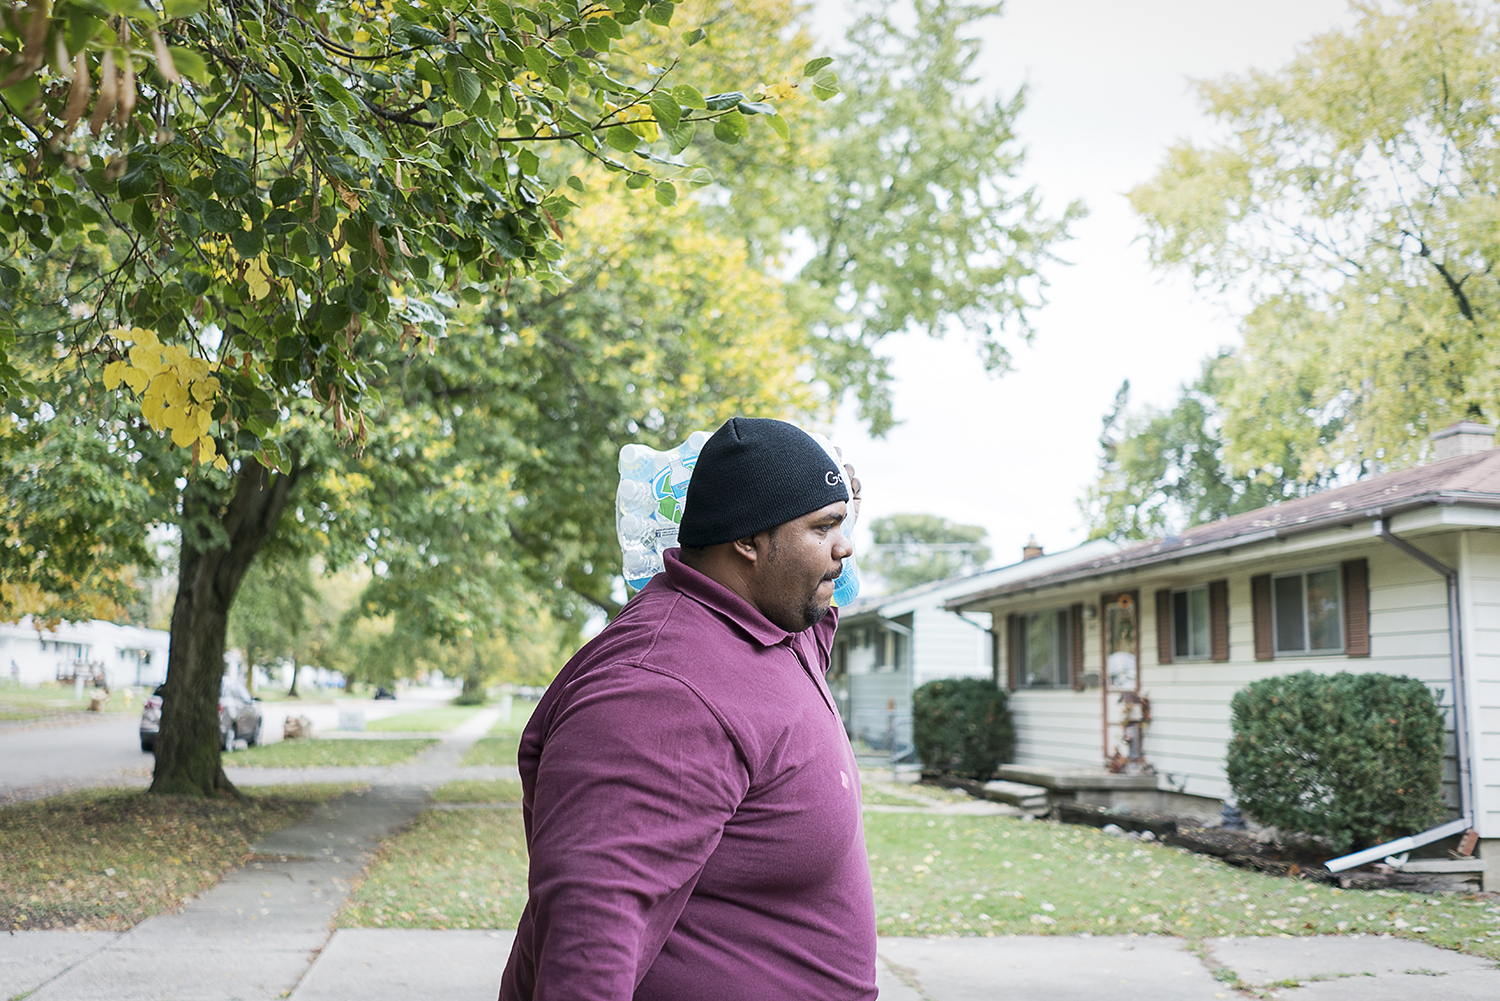 Flint, MI - Wednesday, October 25, 2017: With a case of water bouncing on his shoulder, Flint resident William Harris, 31, walks up the sidewalk to a home in the 4th Ward. Harris finds that the majority of the people receiving deliveries are grateful and he rarely experiences any type of resistance or negativity while on his route.